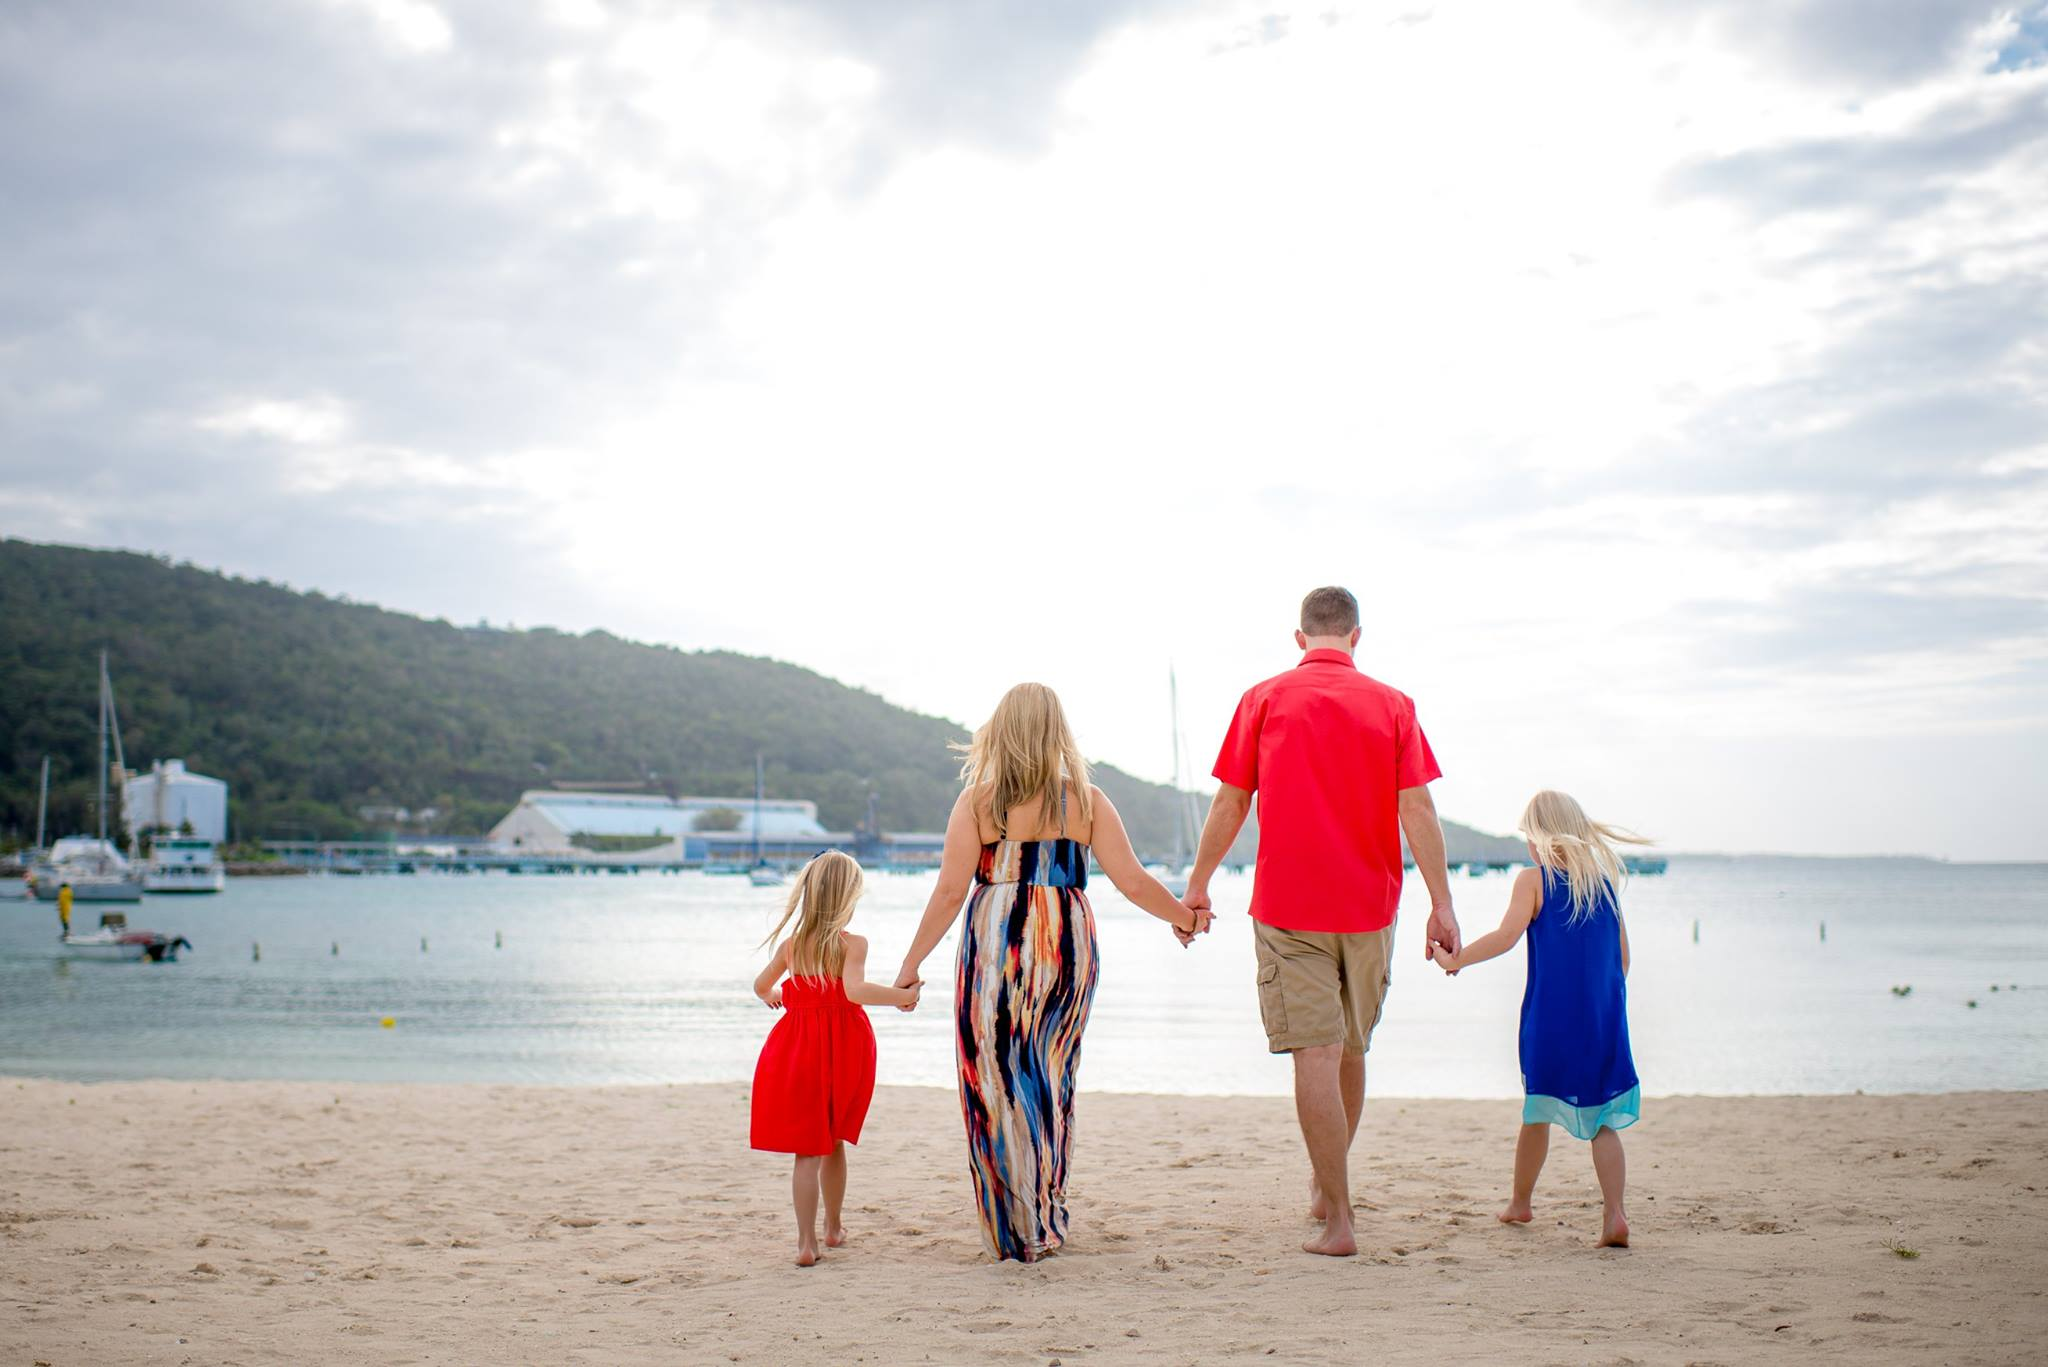 Don't let your vacation time go to waste! Here are 3 reasons you need a vacation to stay productive, active, and healthy in all aspects of your life.